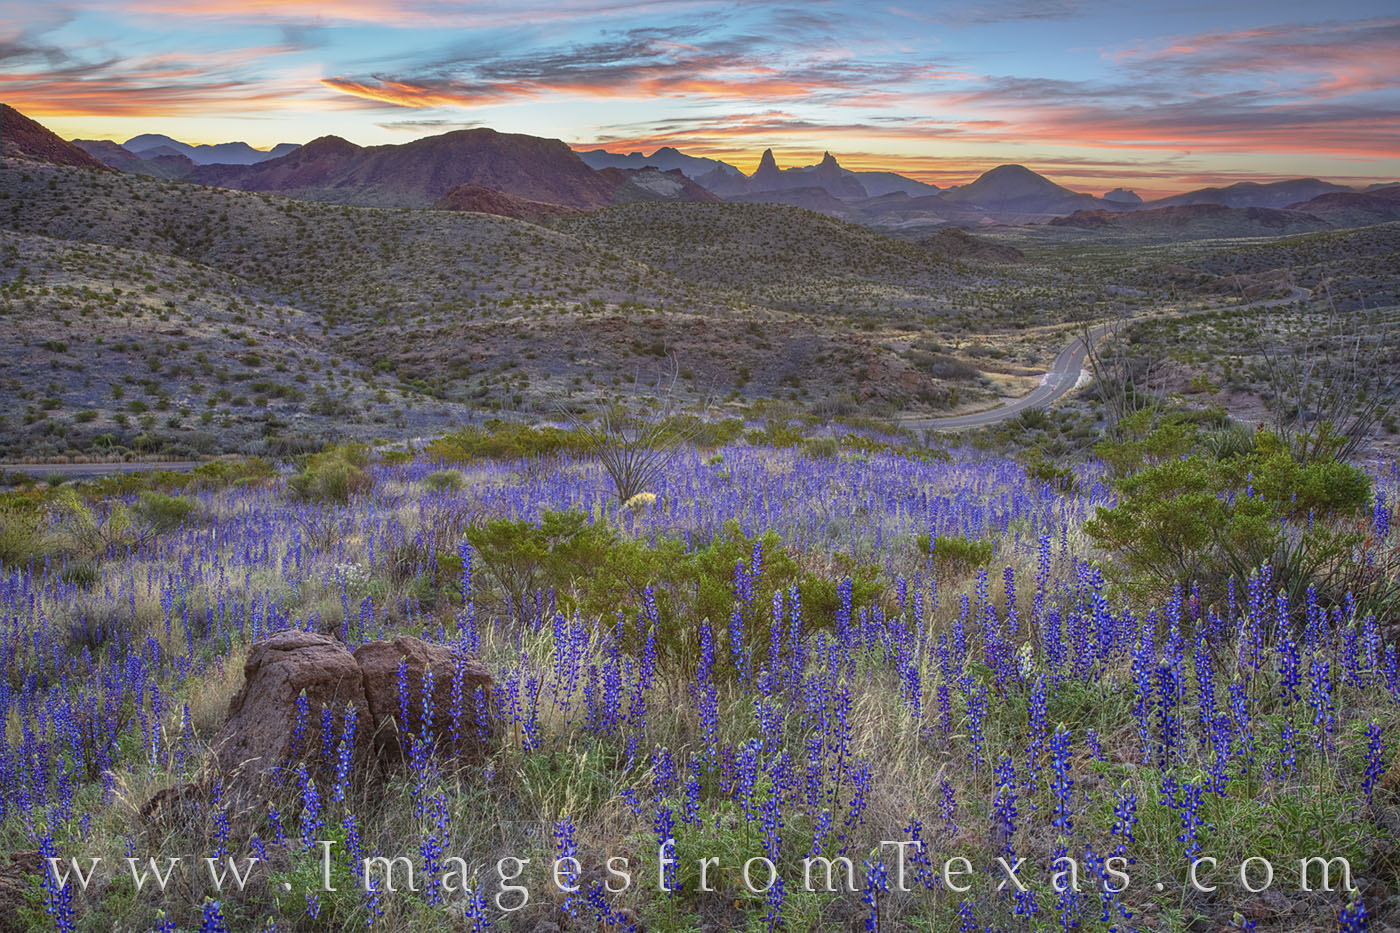 Bluebonnets spilled down the slopes, and from where I stood, the distant and iconic Mule Ears rock formation made for a great...